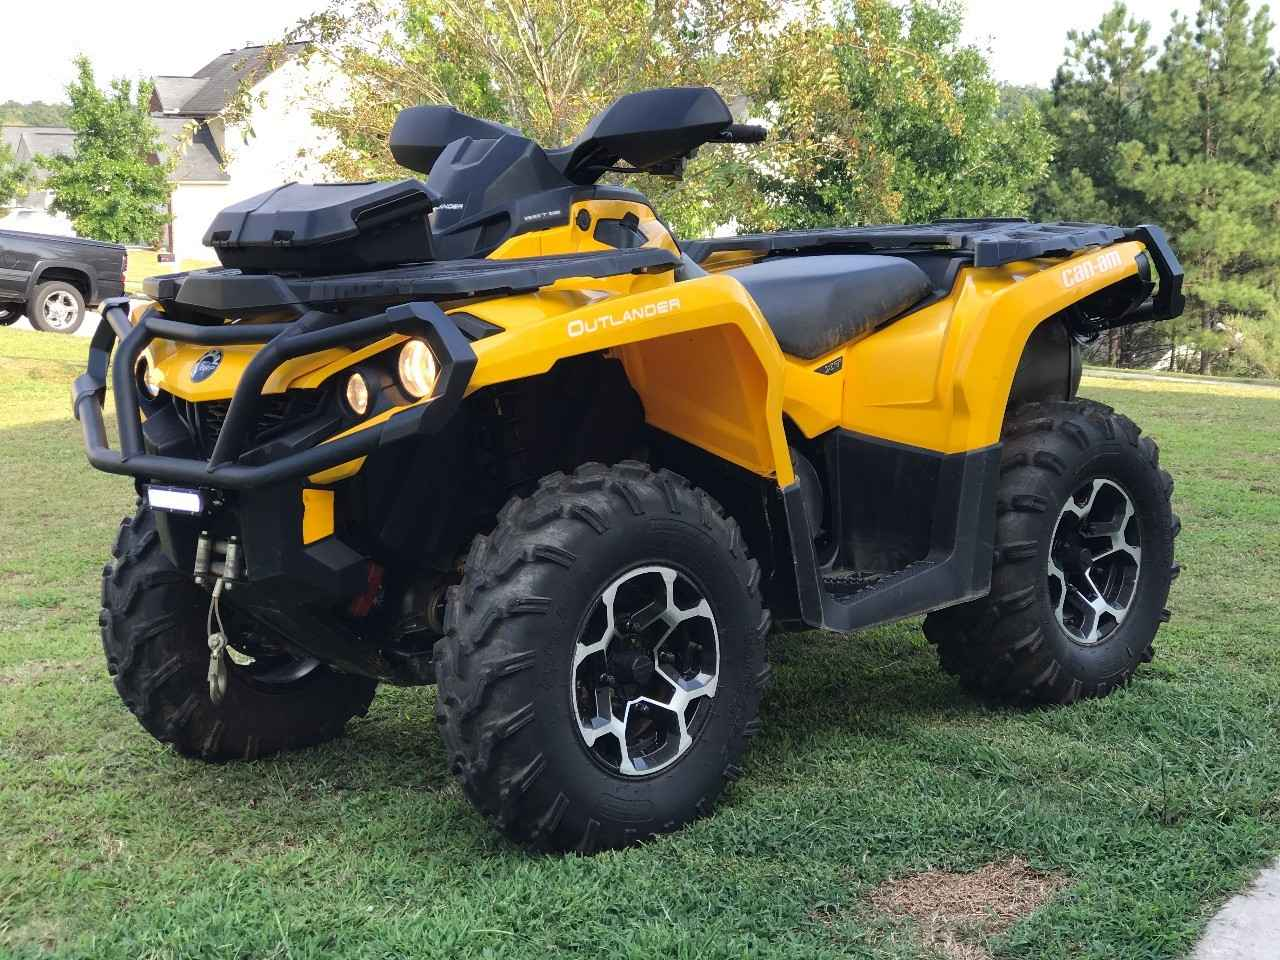 Used 2016 can am outlander xt 850 atvs for sale in georgia for Yamaha atv for sale used